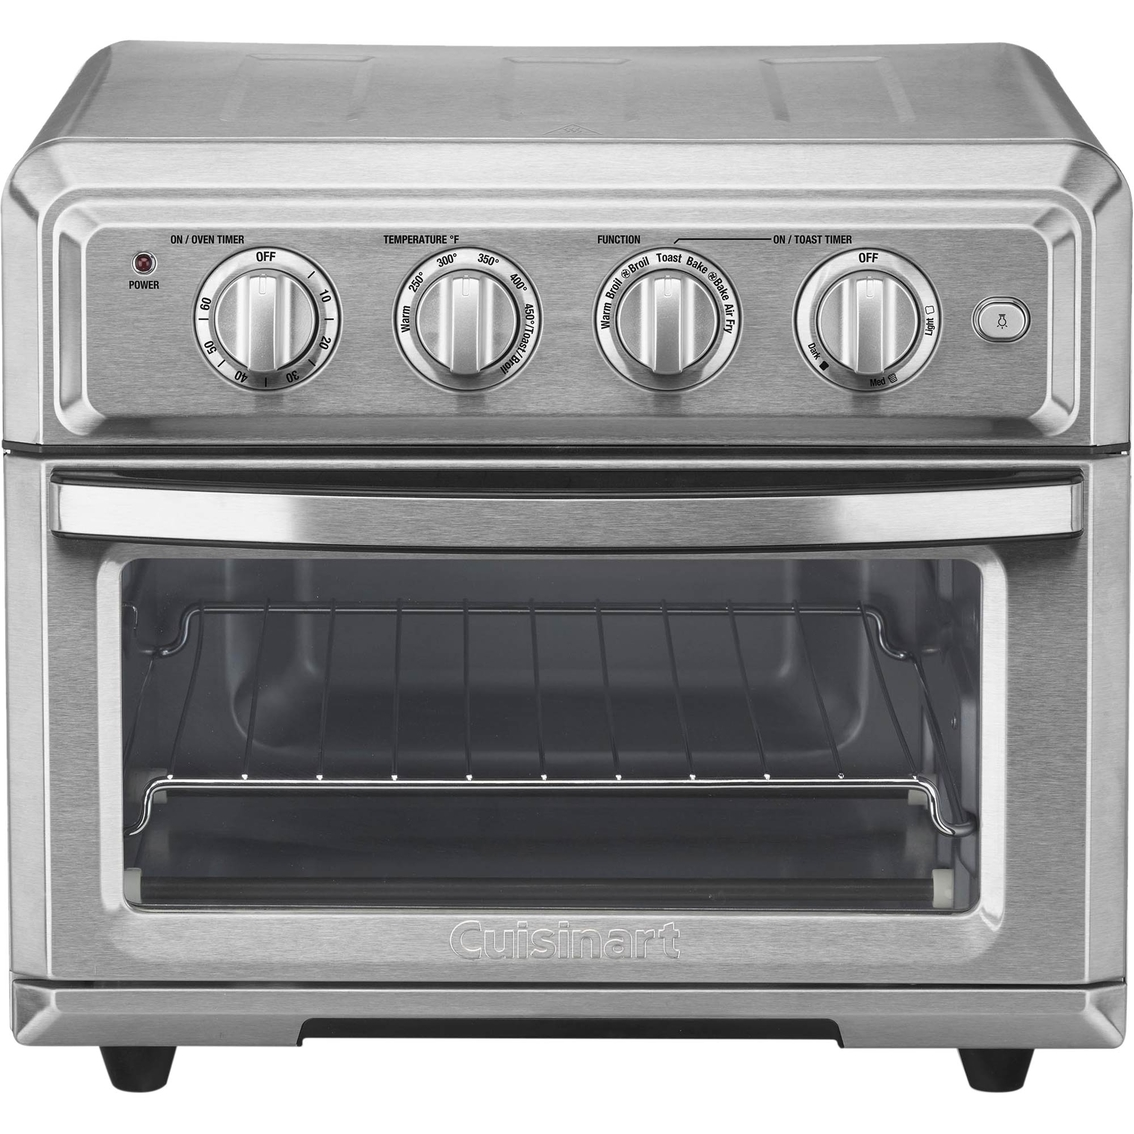 dp com dining decker oven black sale kitchen ovens slice amazon on toaster silver